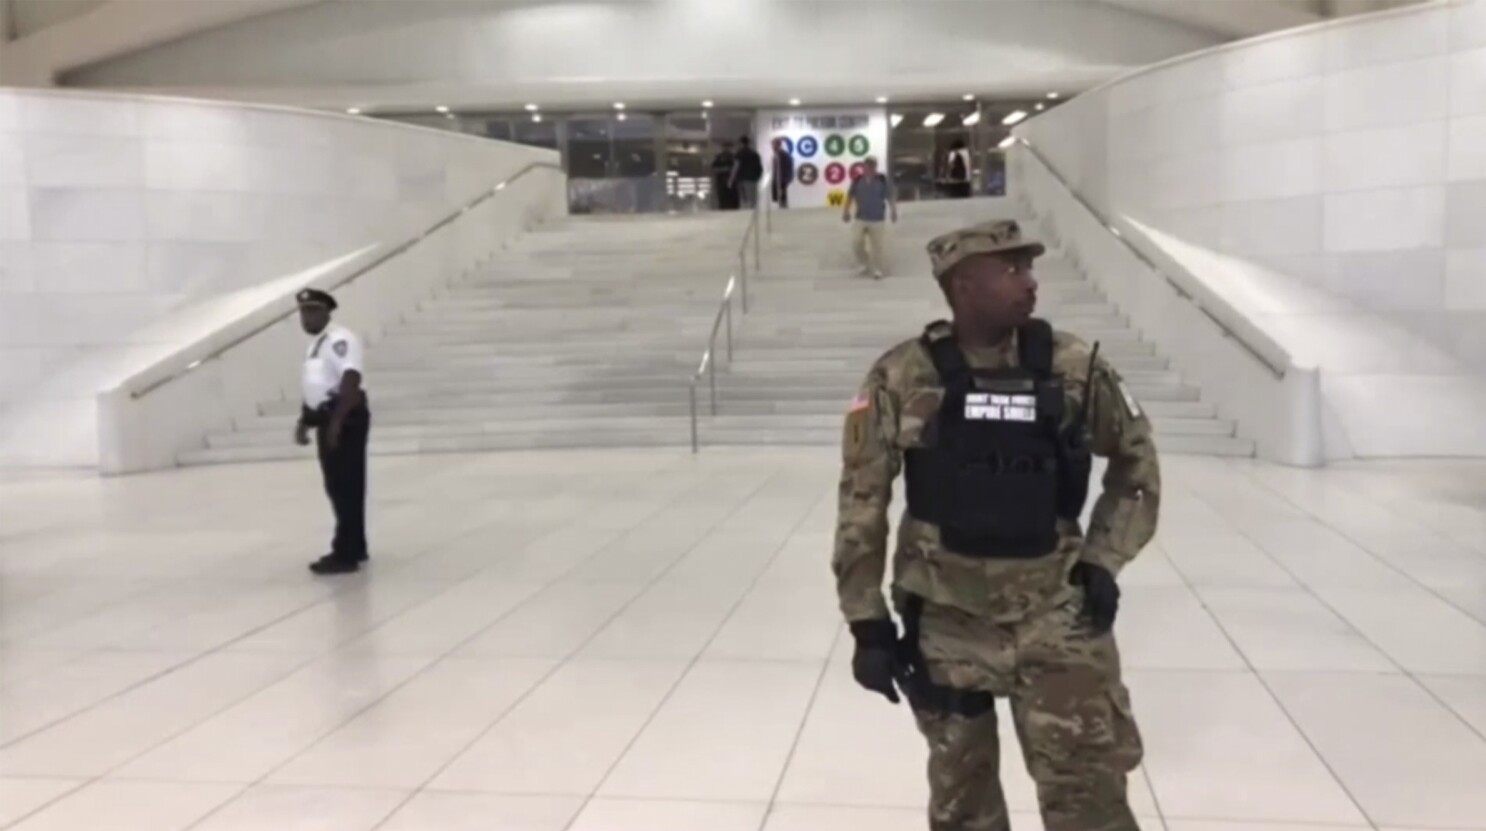 NYPD: Objects found at subway station aren't explosives